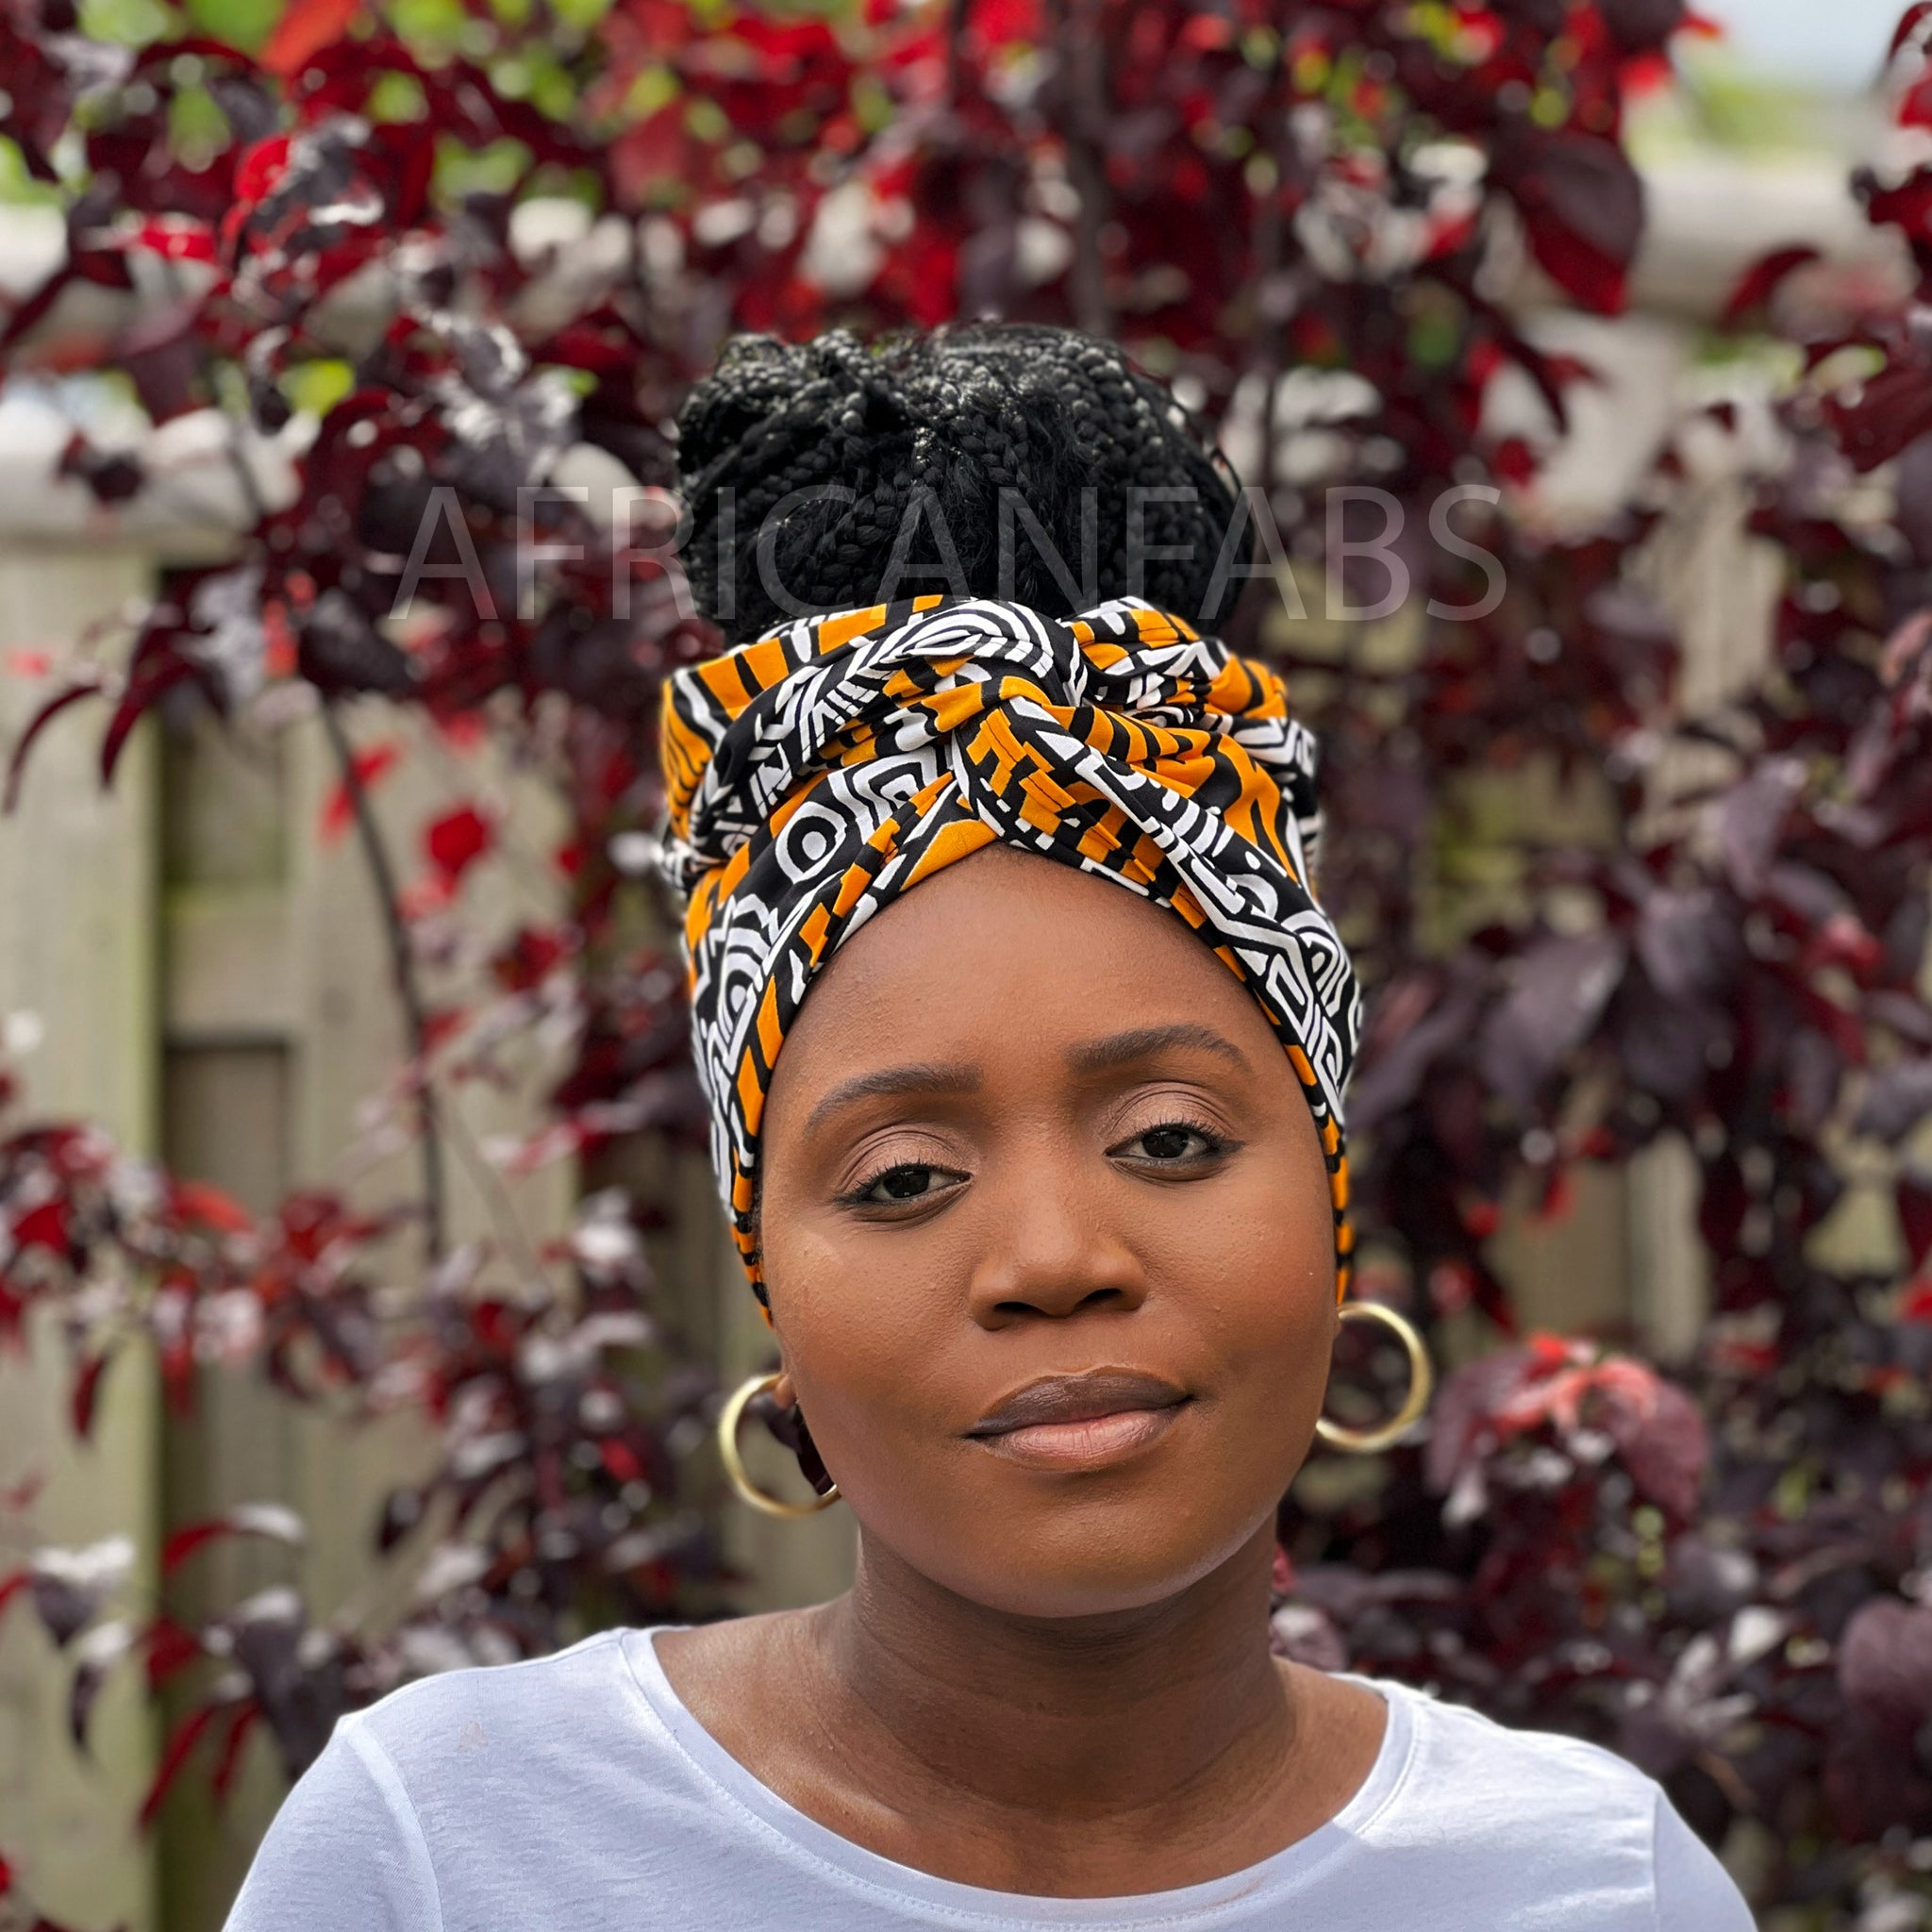 African headwrap - Turquoise blue twister